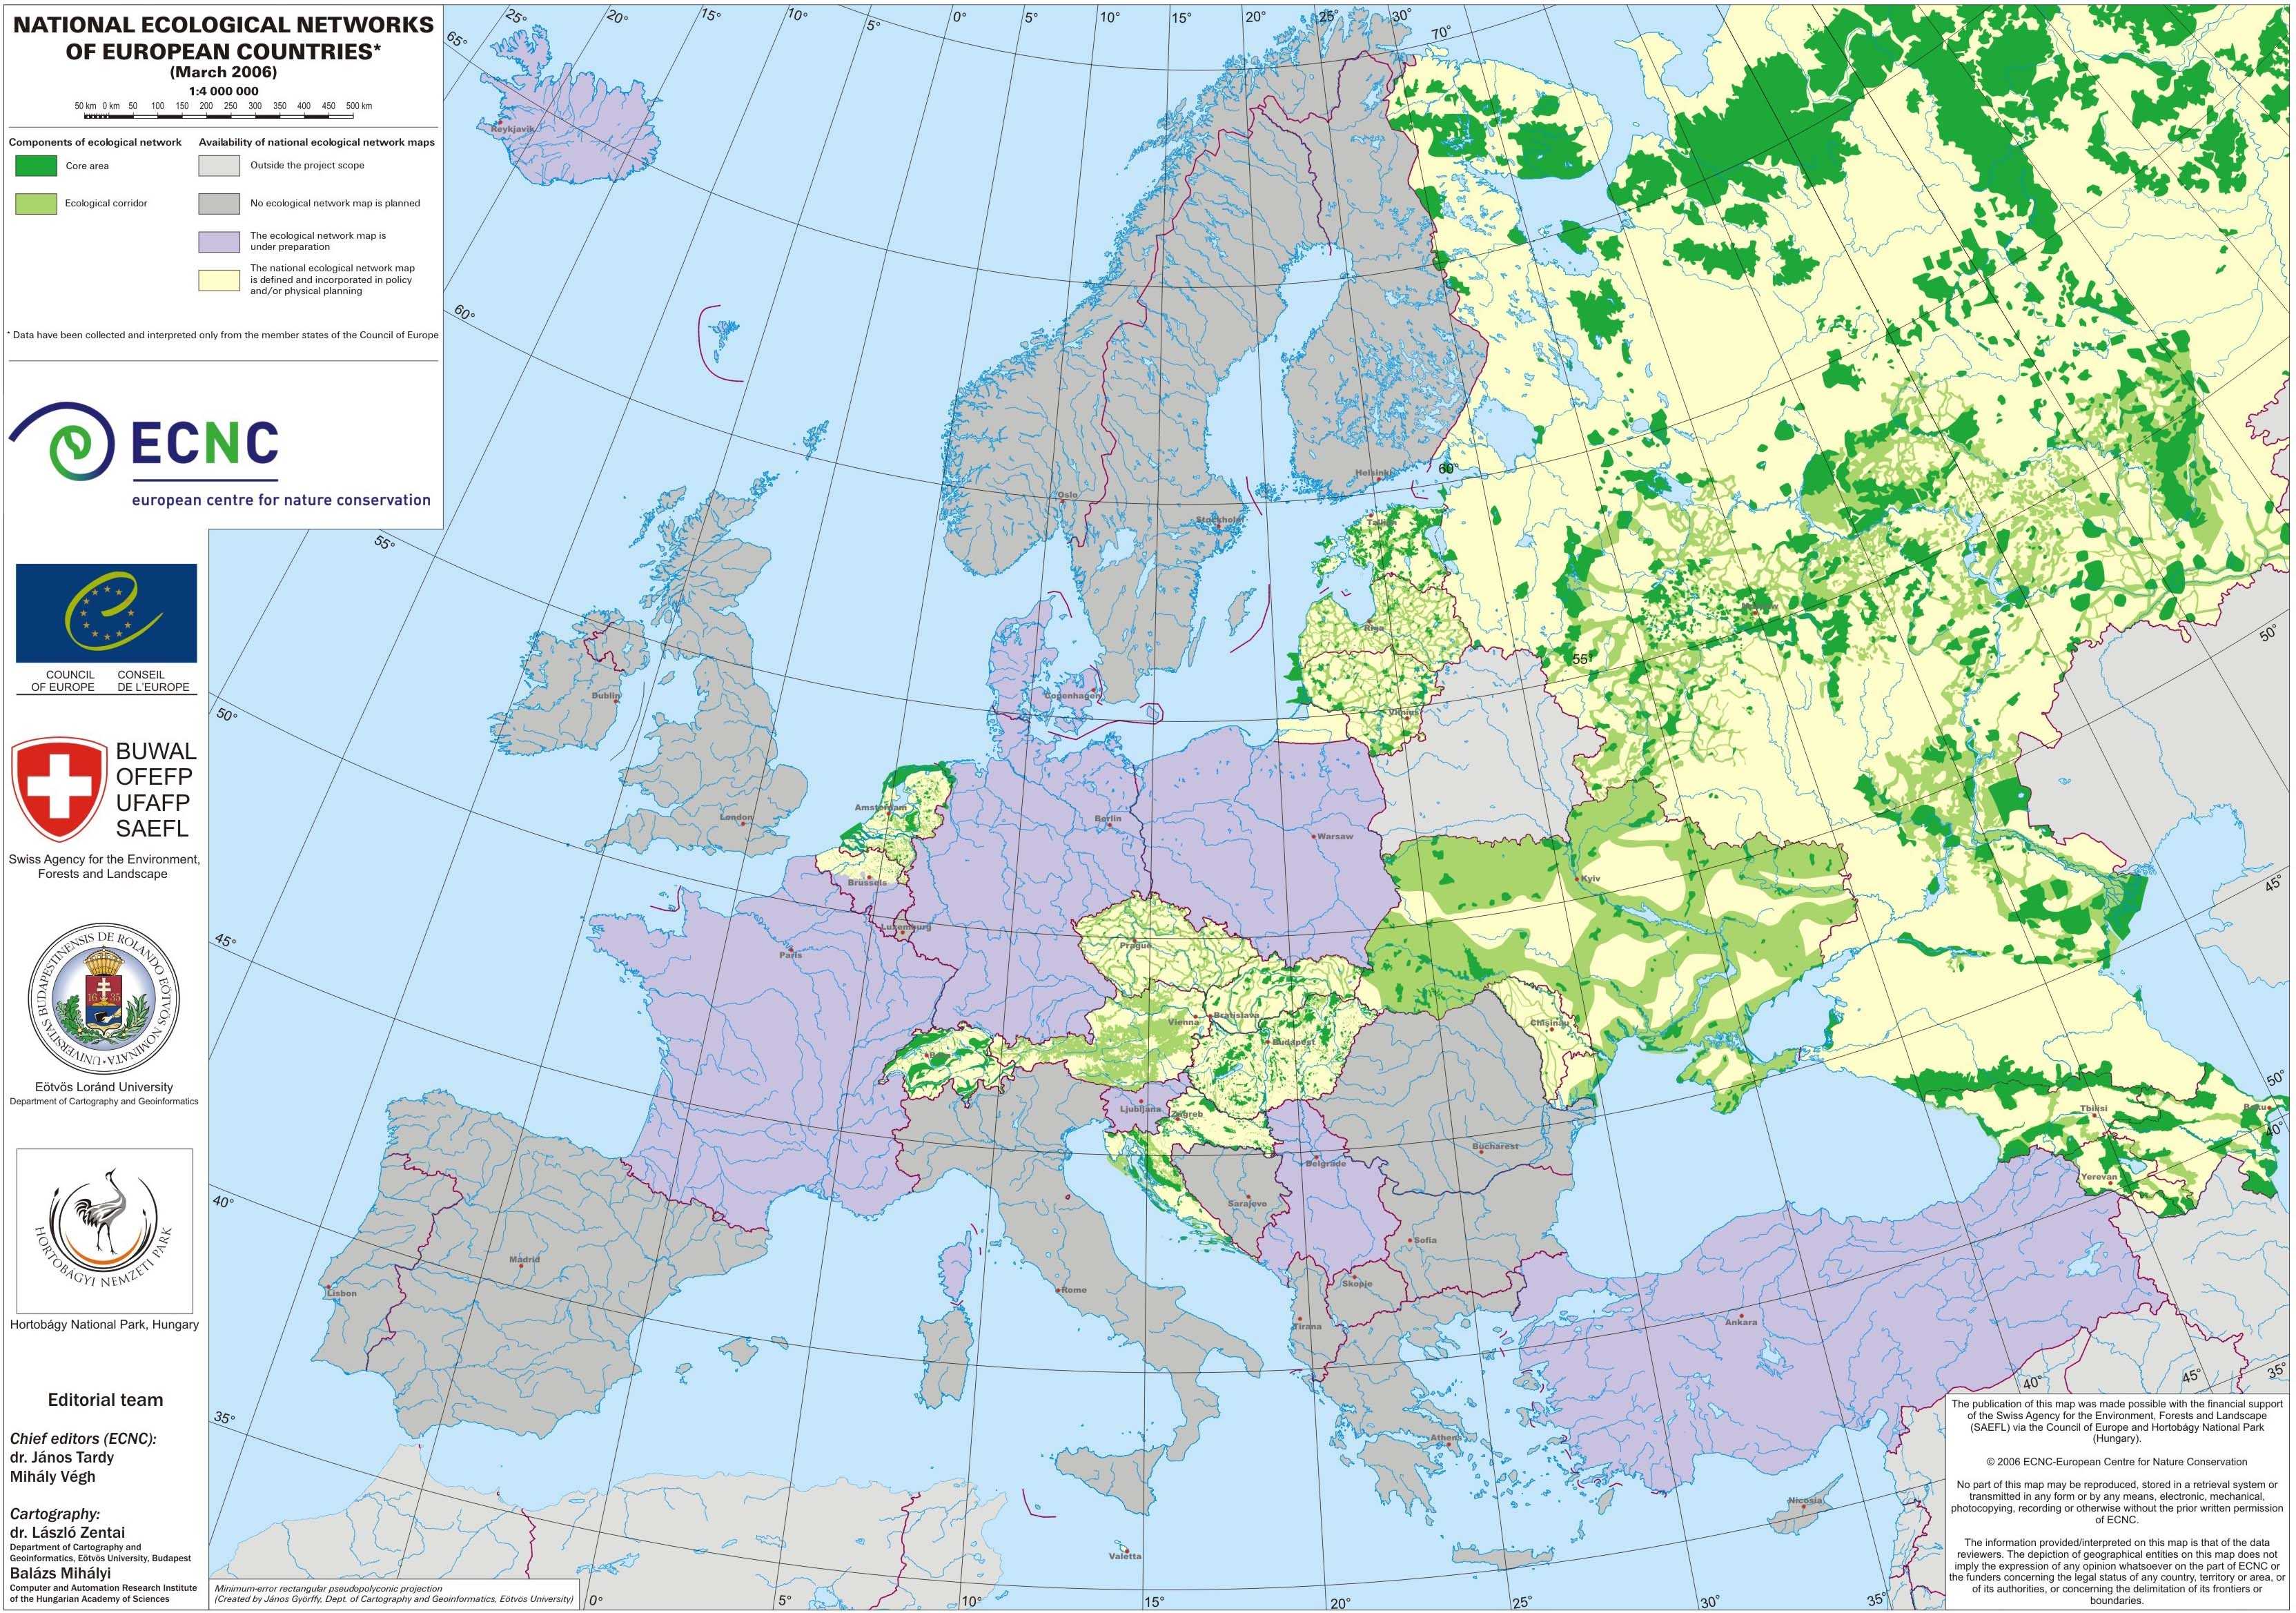 national ecological networks of european countries map daumlbowo poland mappery